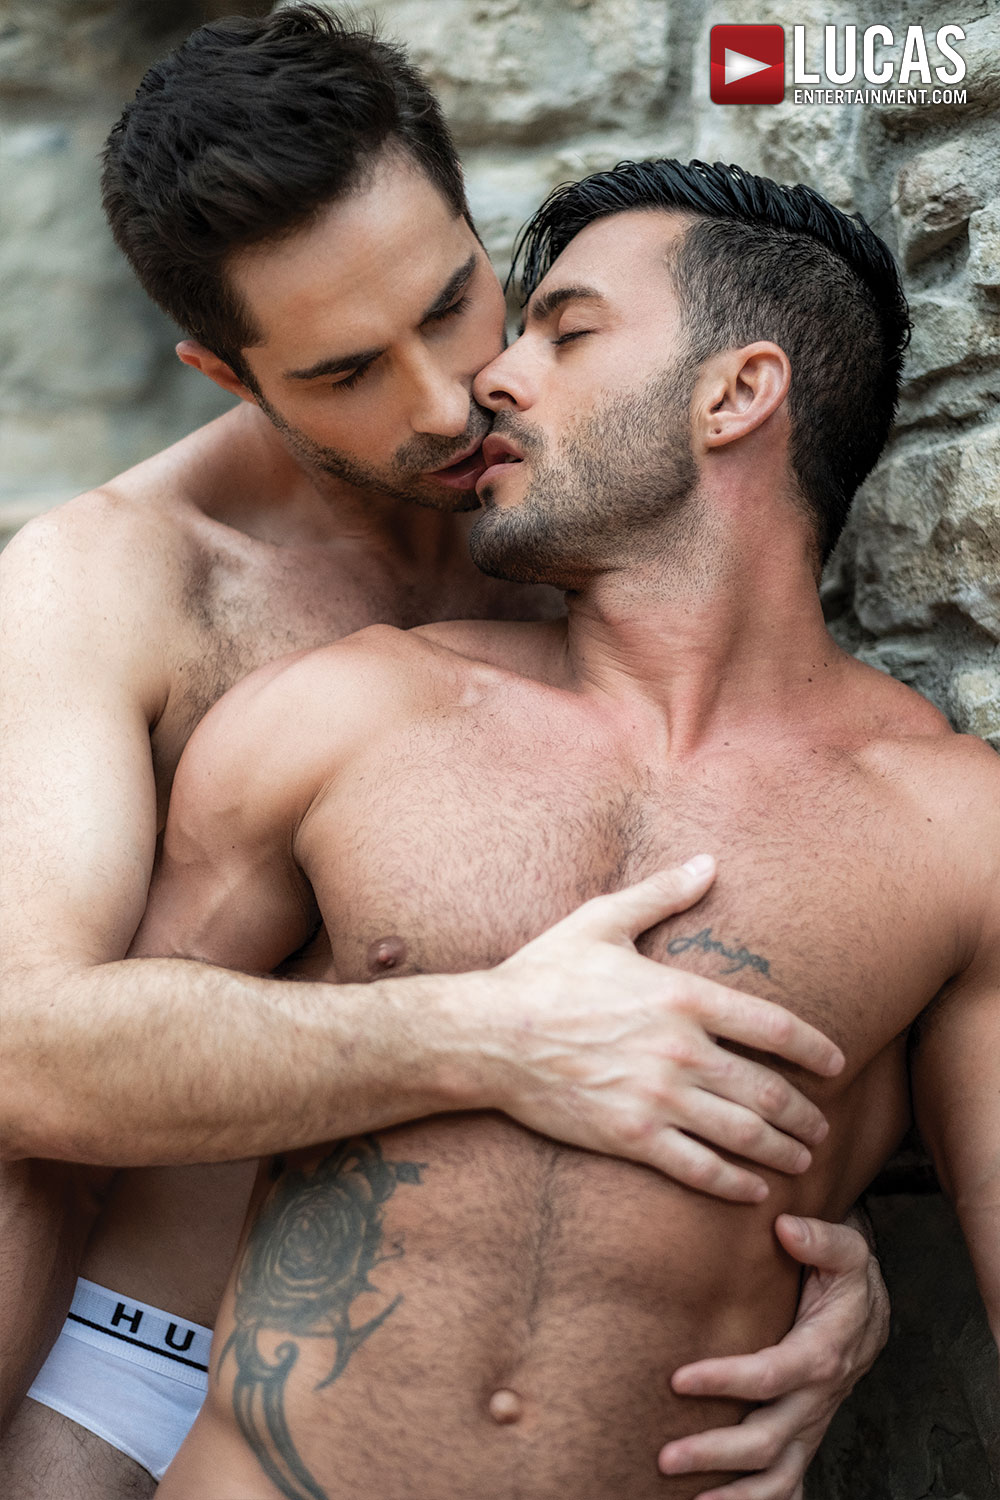 Michael Lucas Breeds Andy Star - Gay Movies - Lucas Entertainment